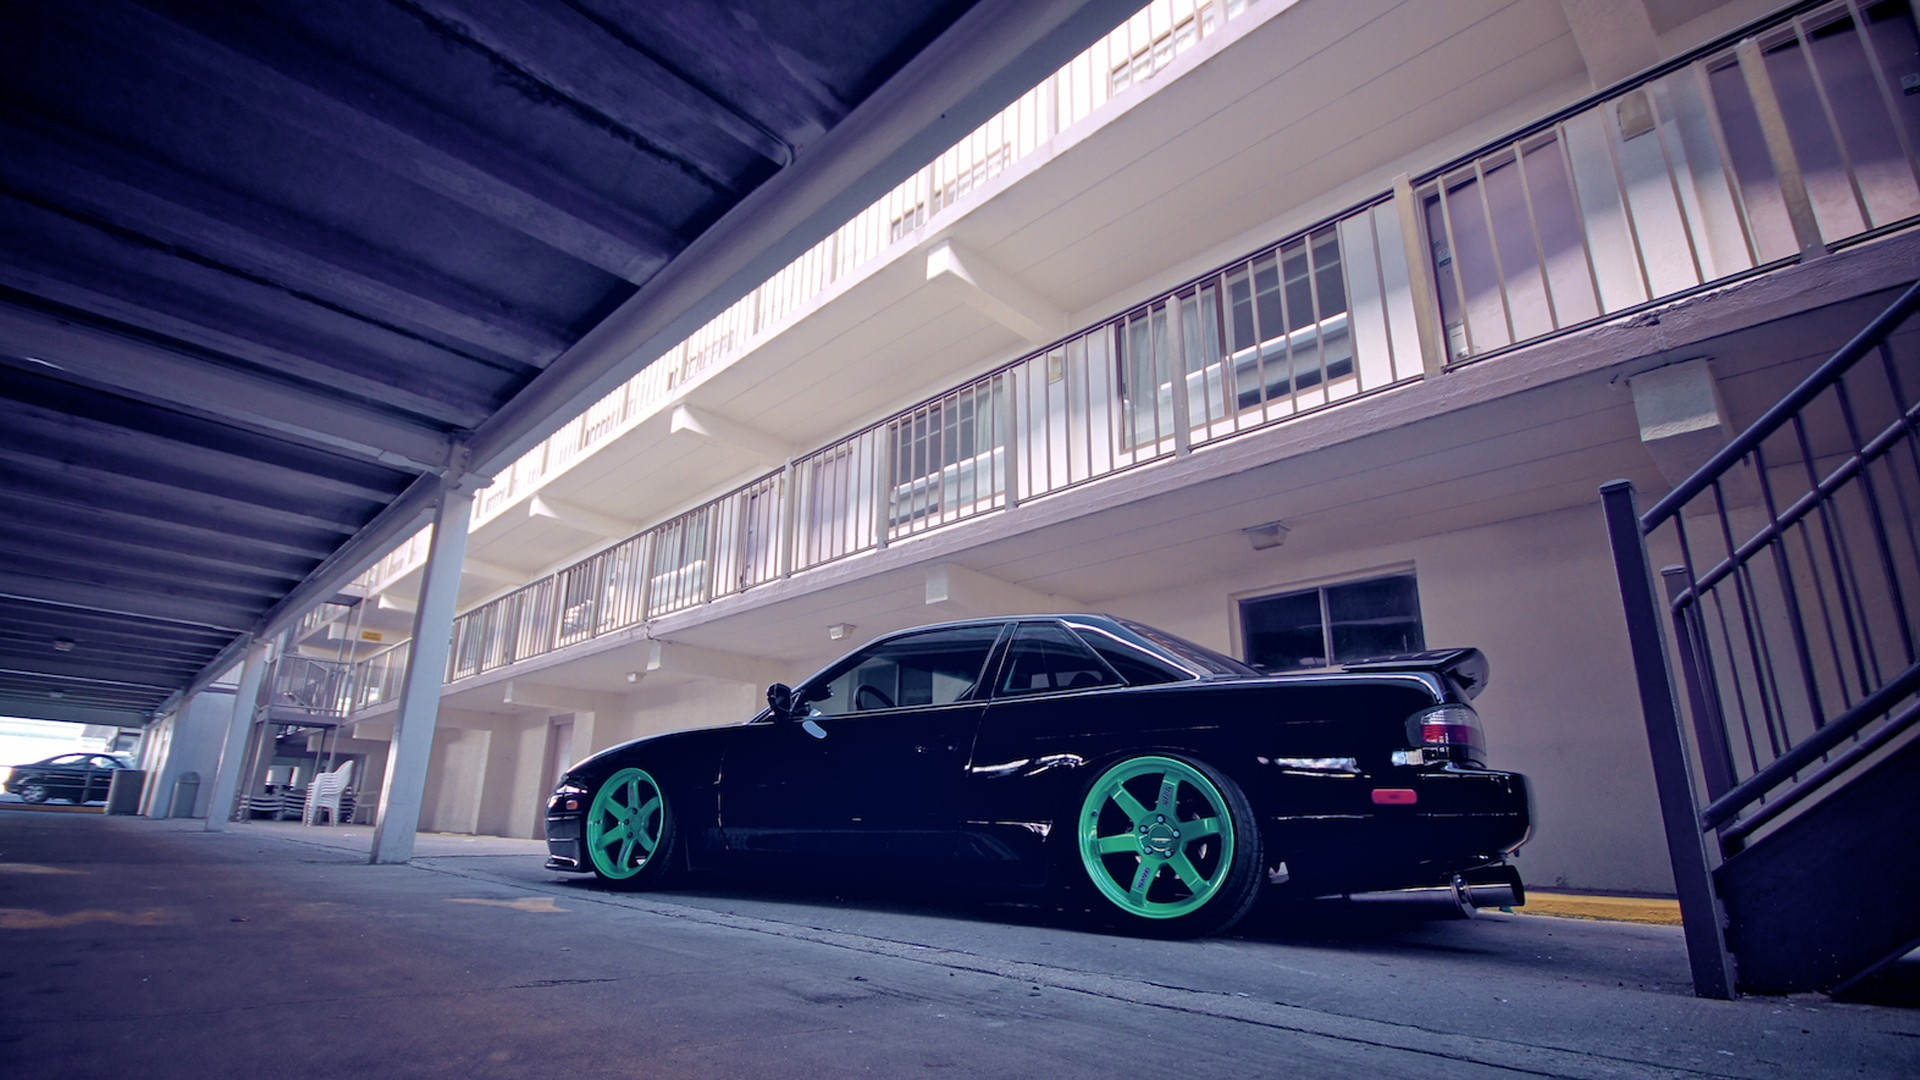 Hd Drift Car Wallpapers 1920x1080 Cars Vehicles Tuning Sports Cars Nissan Silvia S13 Stance